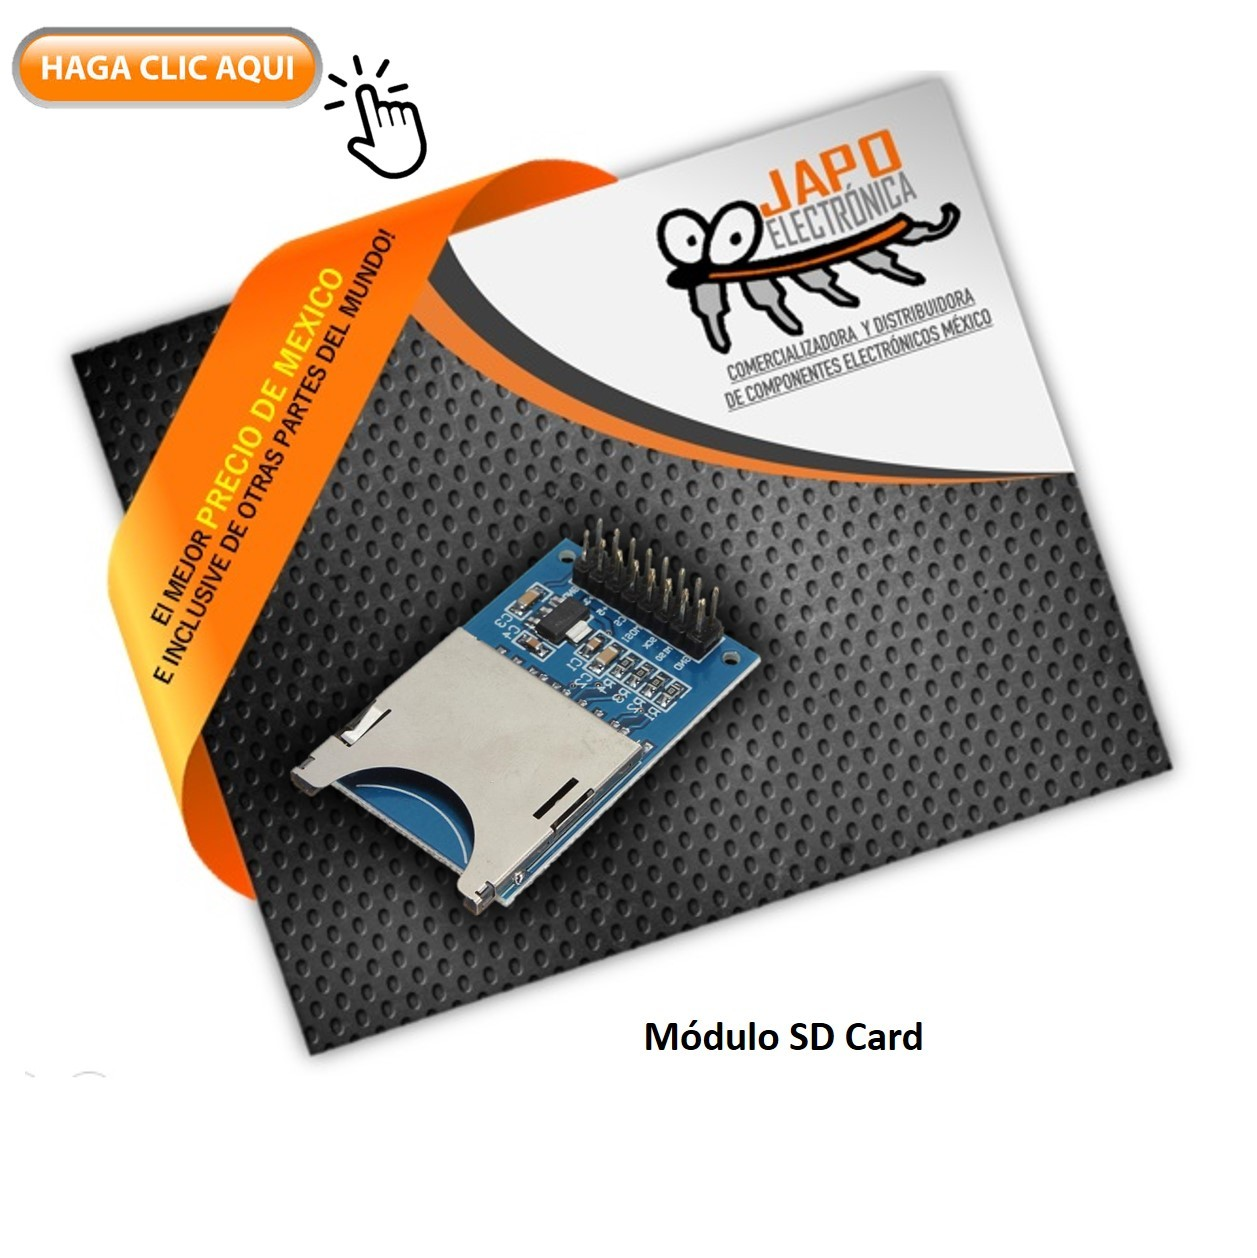 Módulo SD Card